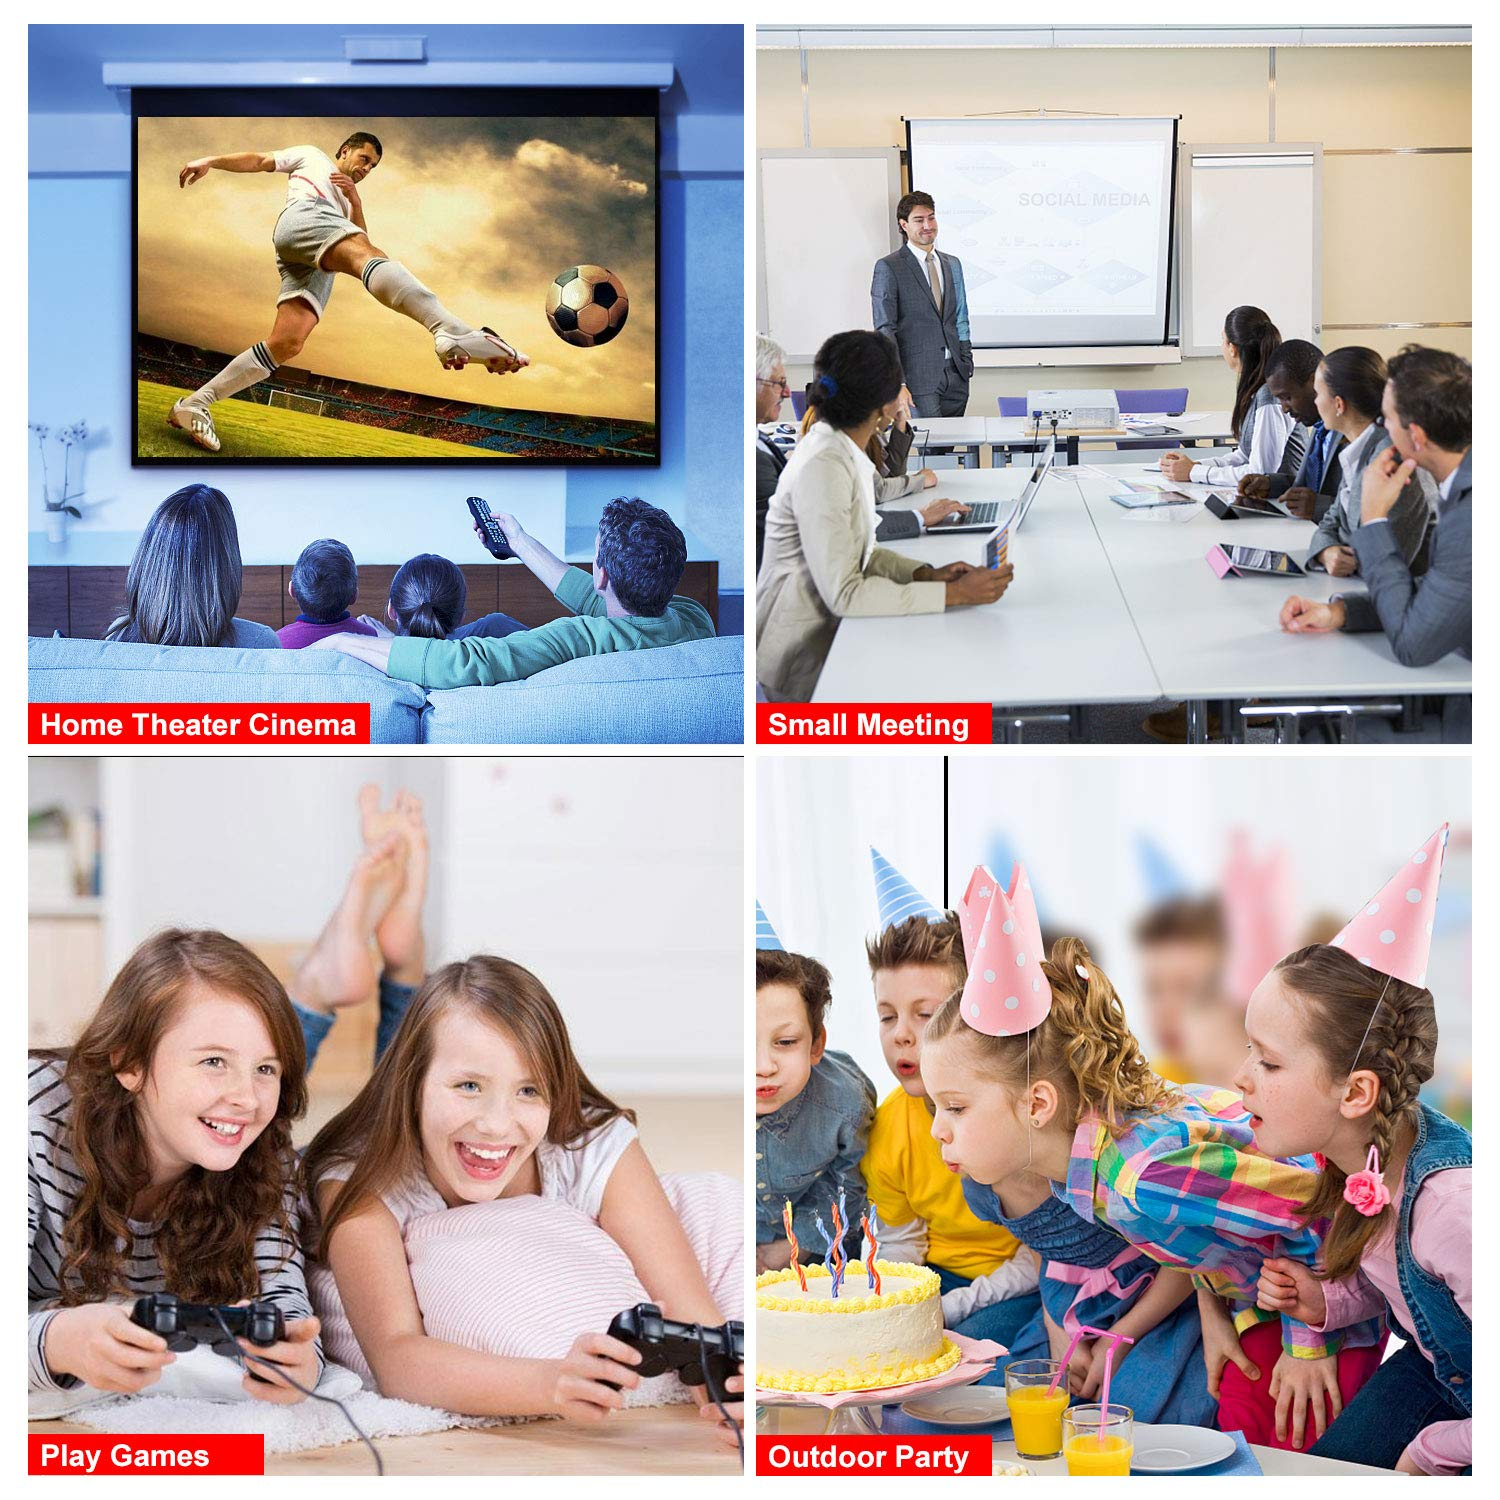 Projector, Queretek Video Projector 2800Lux WiFi Direct, HD Projector Mini Home Theater Projector Support 1080P, with HDMI Cable USB VGA AV, Compatible Laptop Tablet Smartphone Amazon Fire TV Stick by Queretek (Image #7)